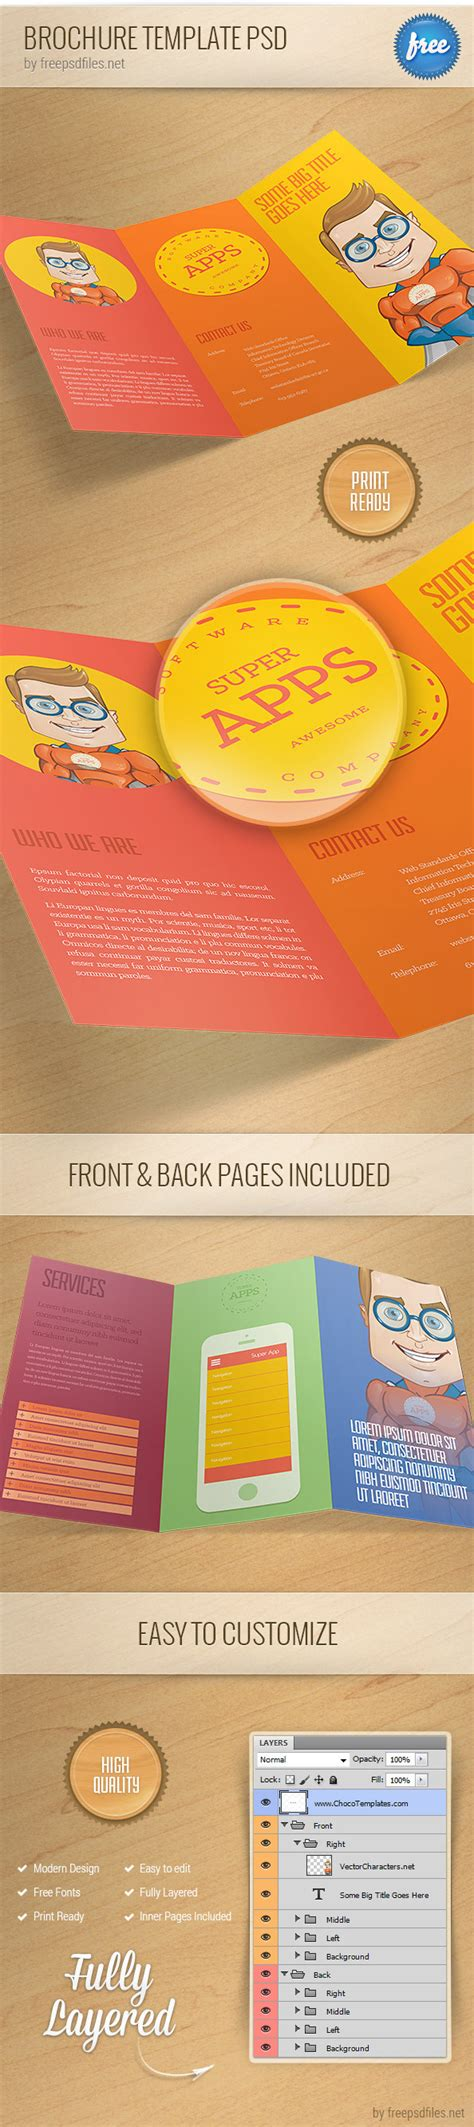 25 best free psd brochure templates free psd templates